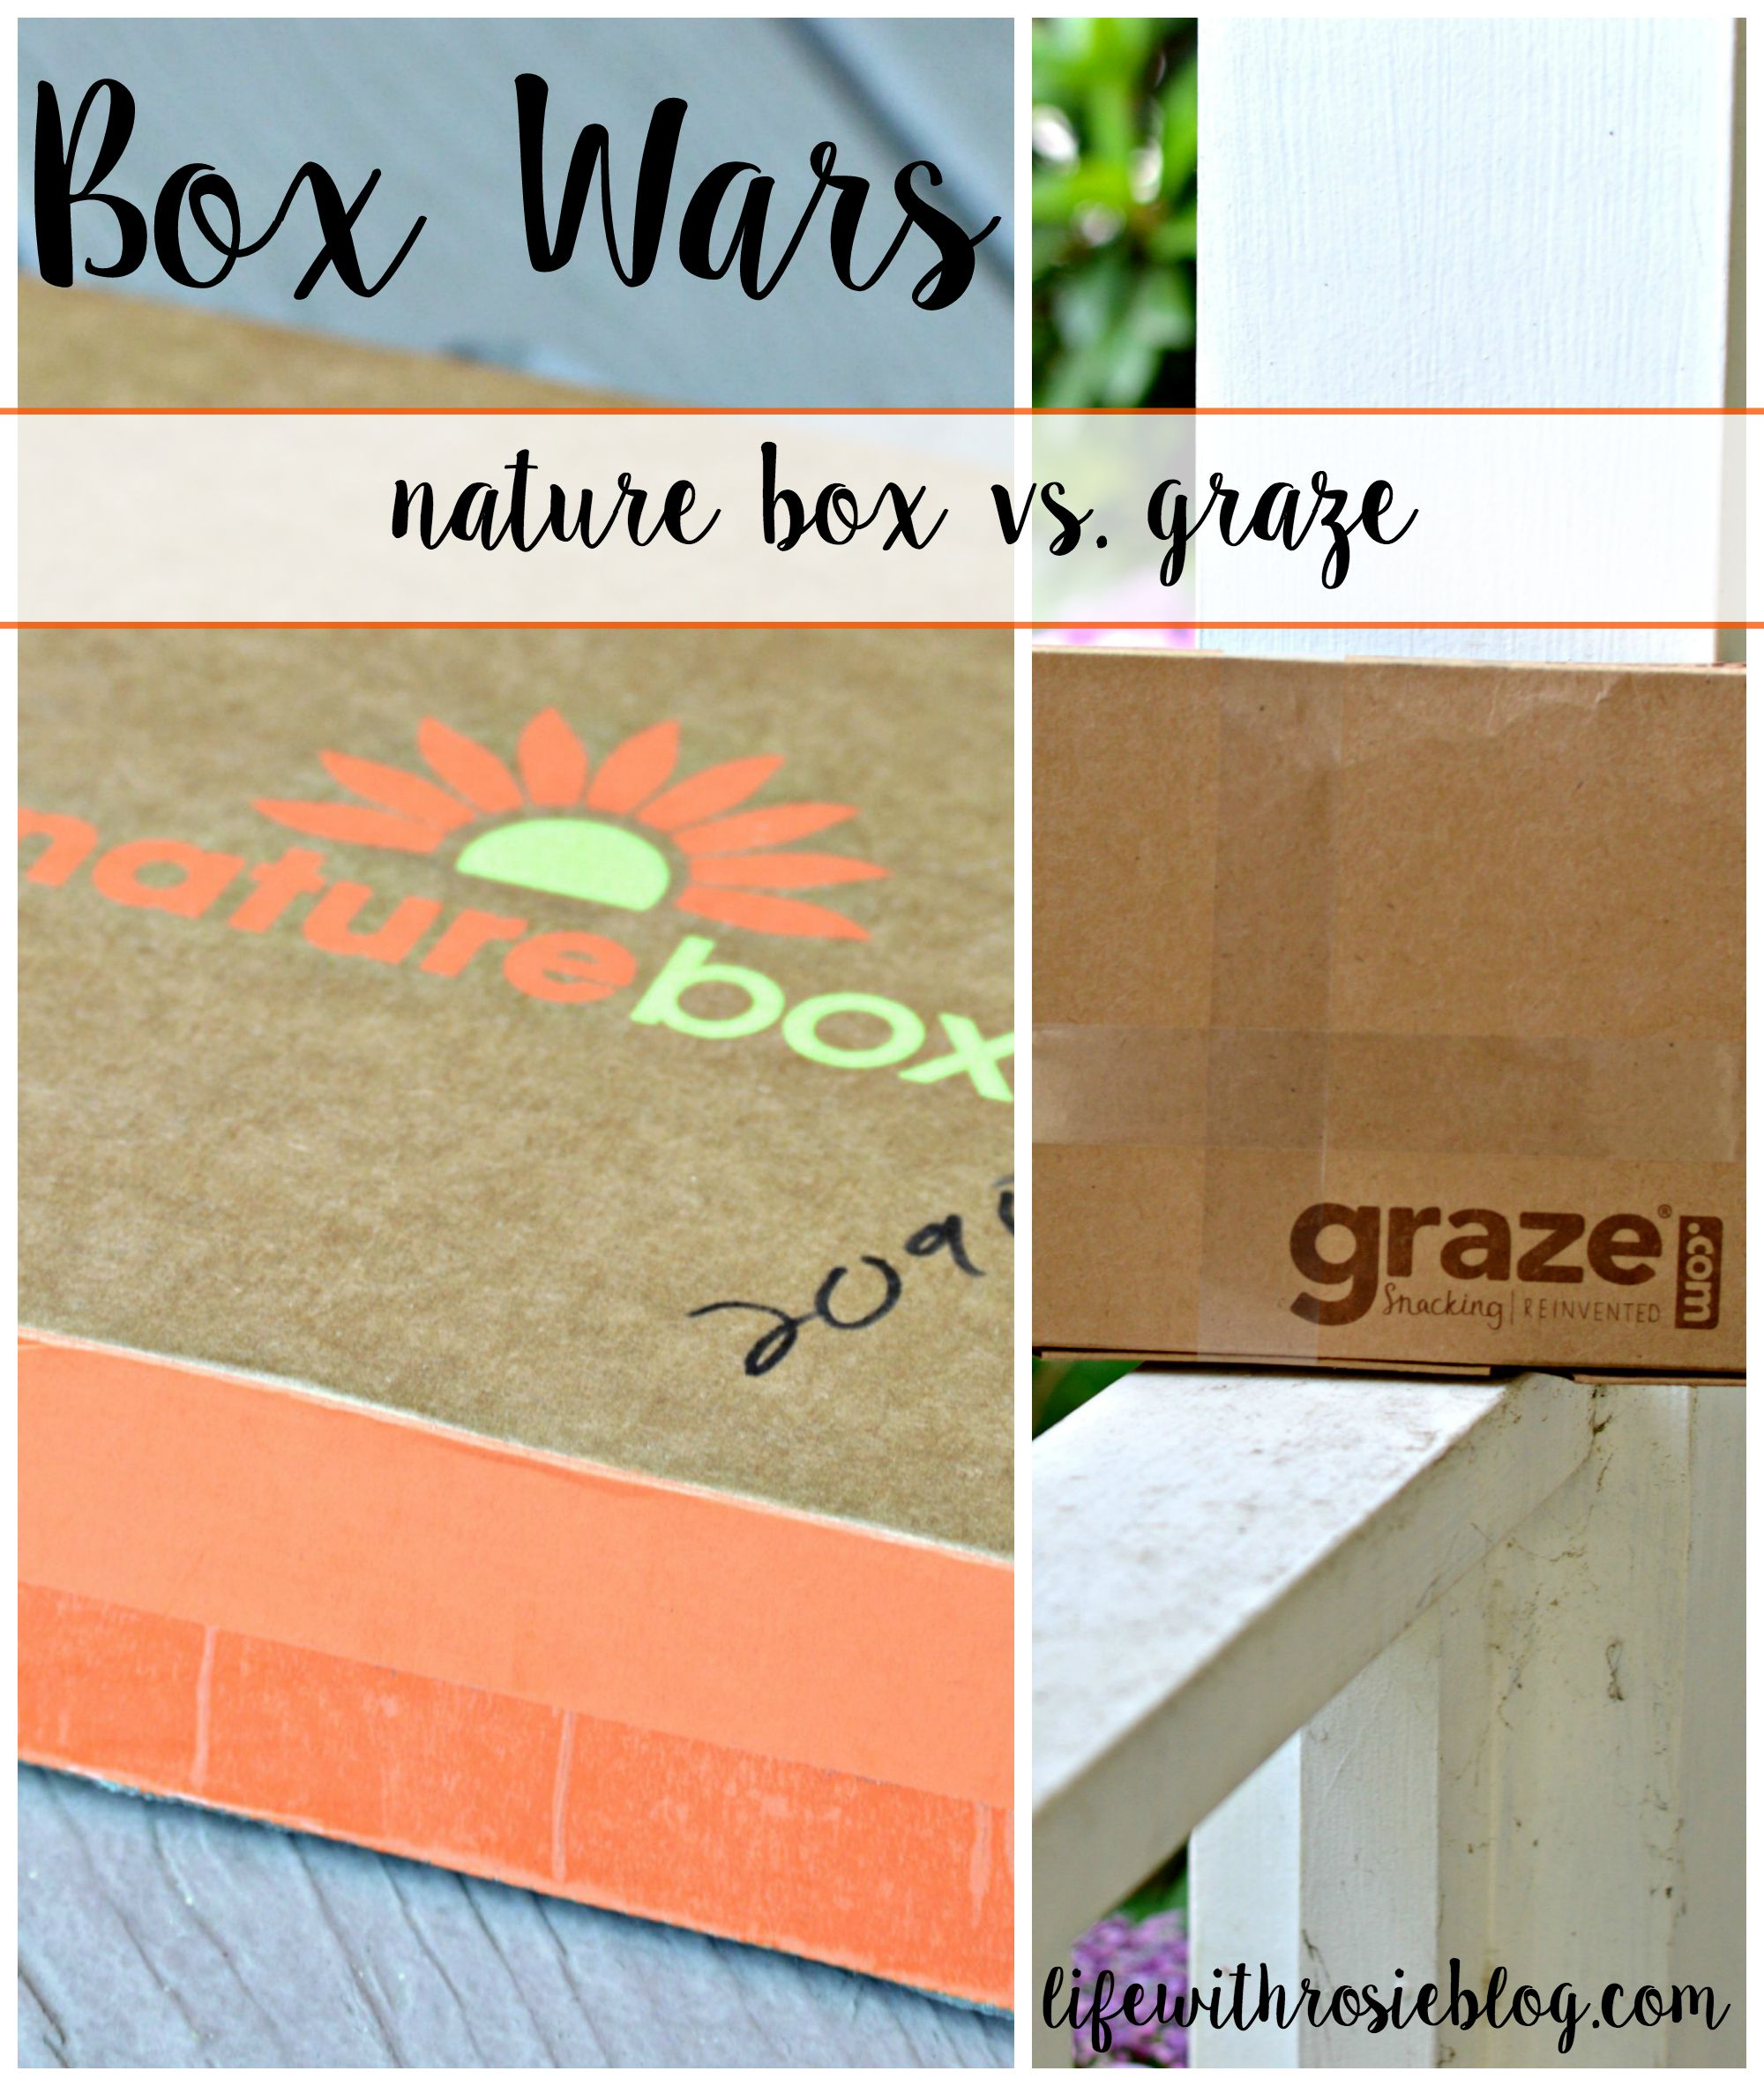 Box Wars: Nature Box vs. Graze.com Box. Which one is the better bang for your buck and taste buds? // Life with Rosie